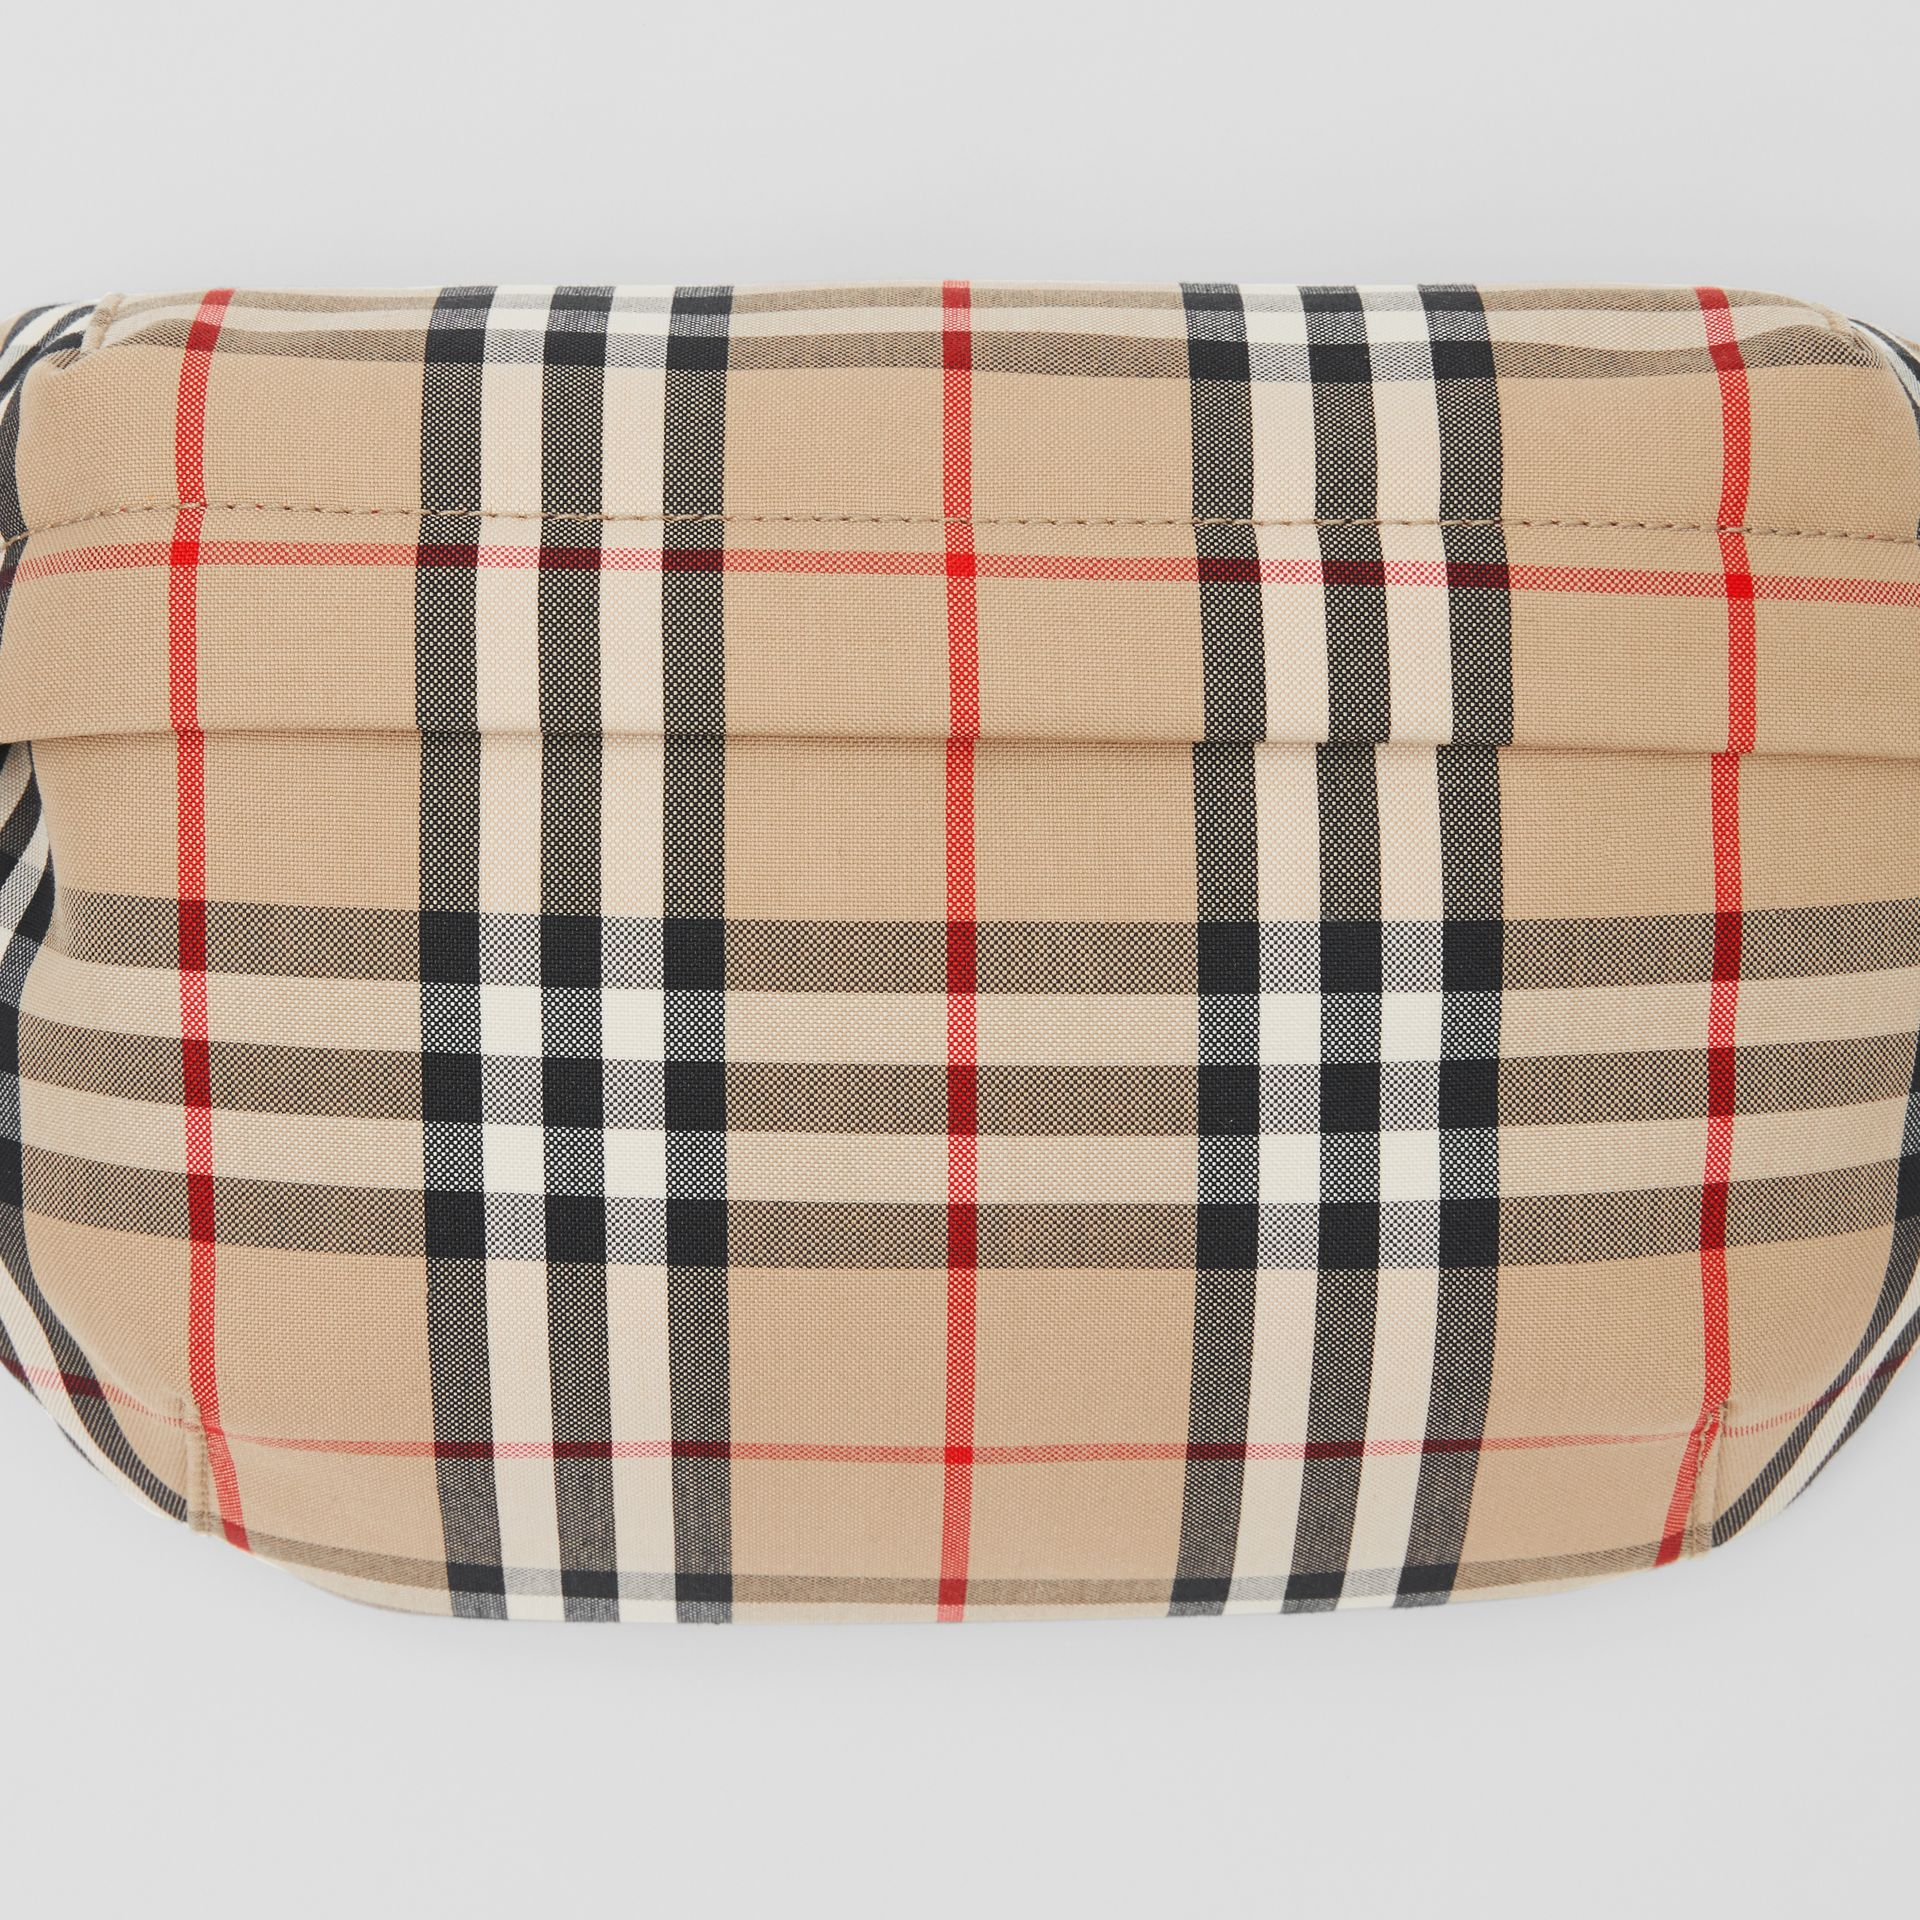 Medium Vintage Check Bonded Cotton Bum Bag in Archive Beige | Burberry Australia - gallery image 1